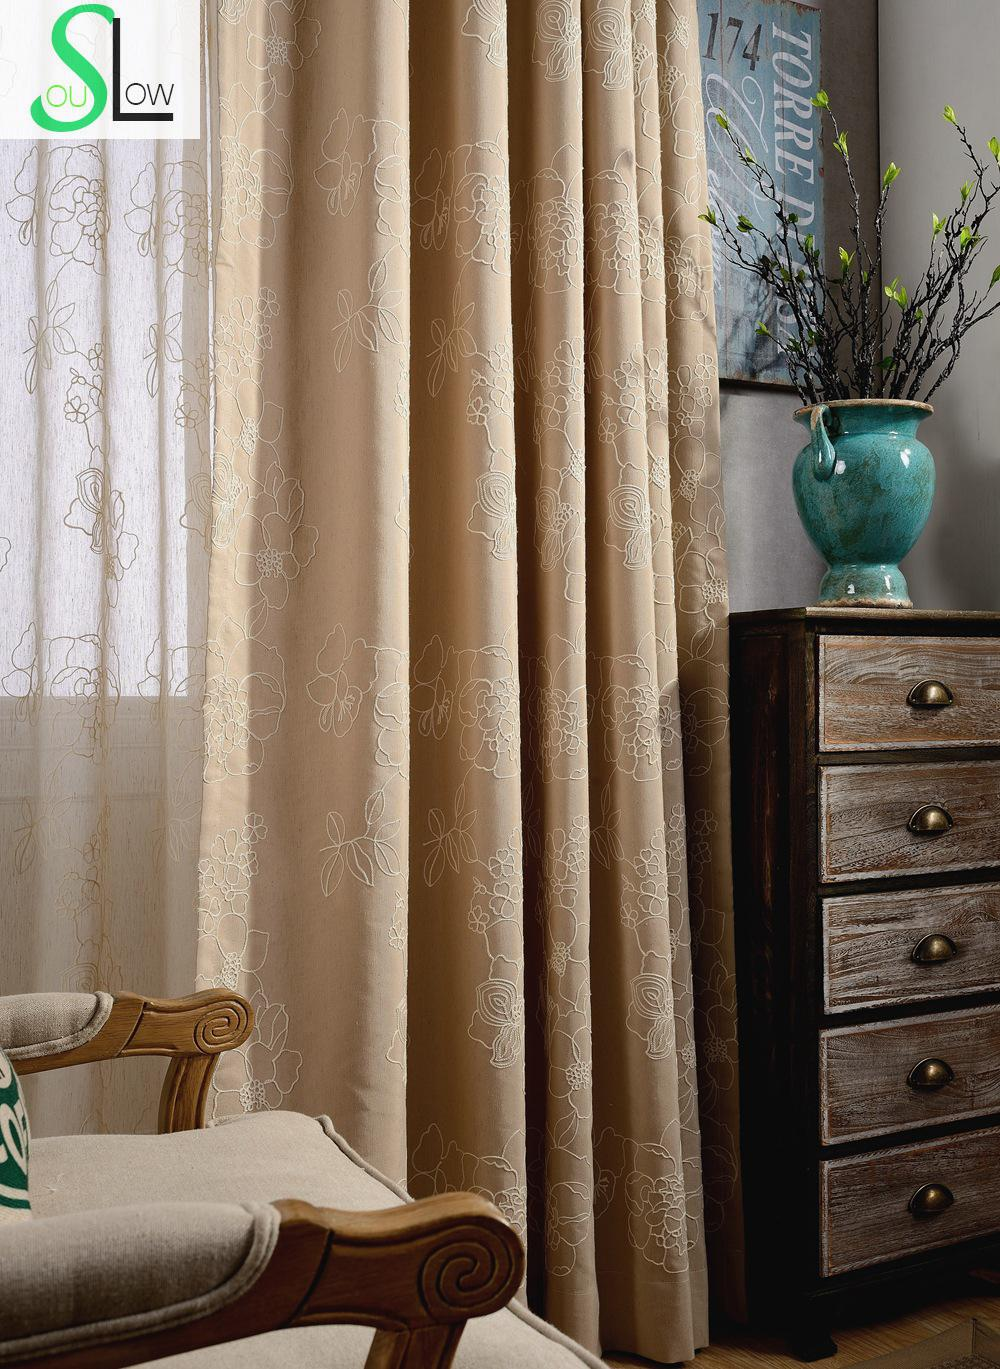 Elegant Embroidered Linen Blackout Curtains For Living Room Tulle Sheer Volie Curtain Screens Cortinas Para Sala De Luxo Cortina